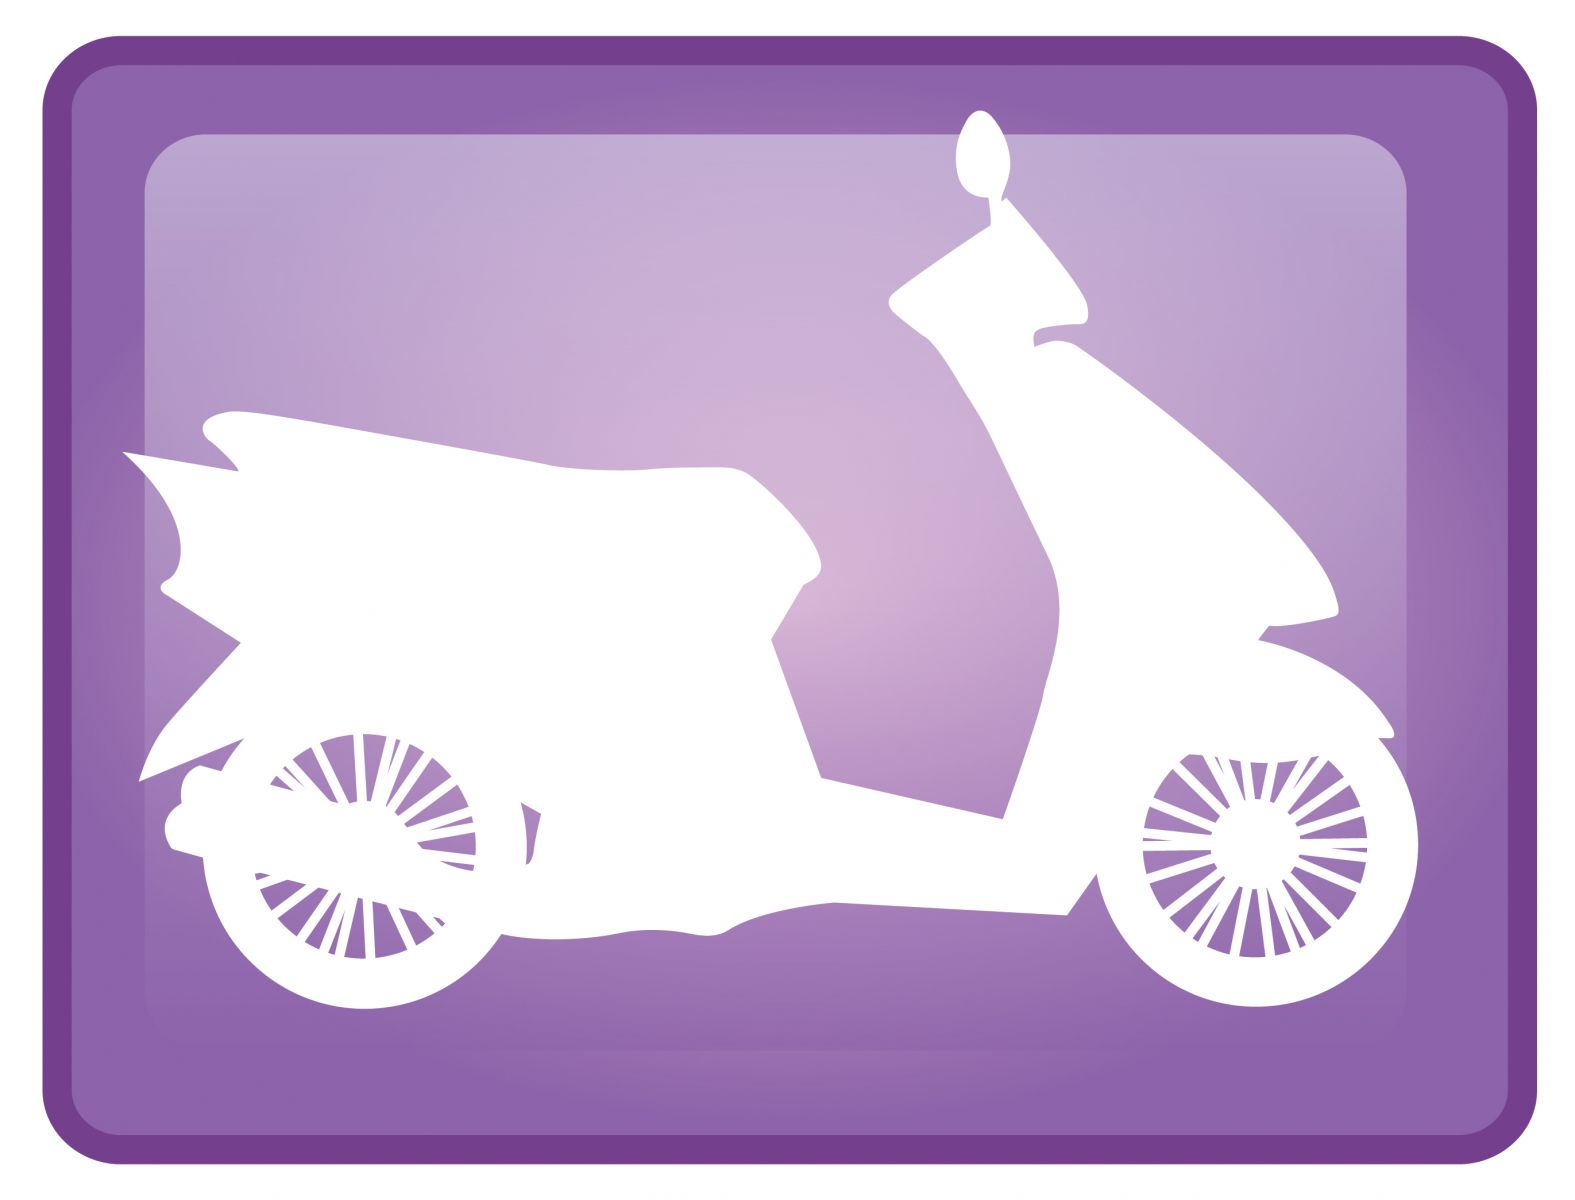 Somerset Road Safety: Derestriction of mopeds.